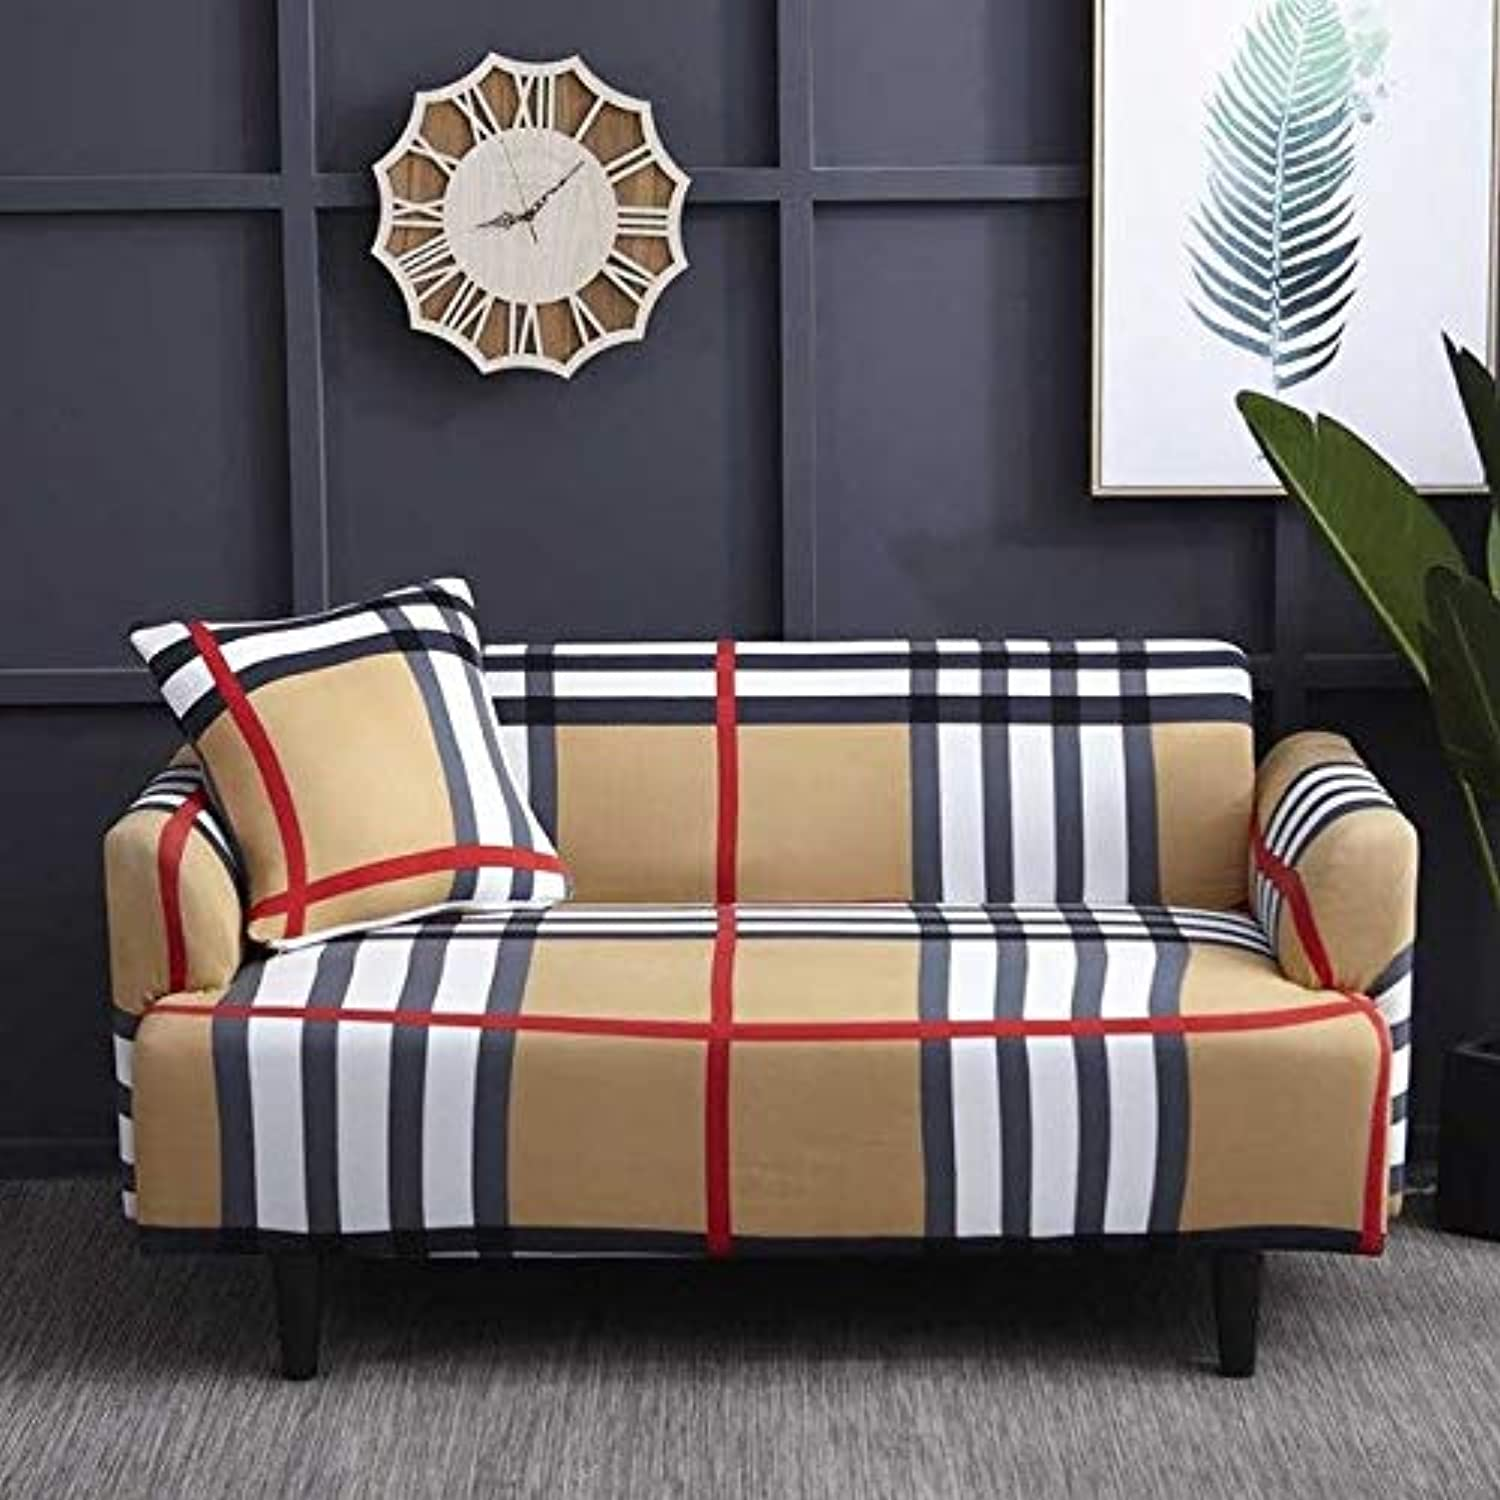 Zoomy far Zebra color Lig Room Sofa Cover Slipcover Elastic Congreen Cover Tight All-Inclusive 1 2 3 4-Seat Single Two Three Four-Seater   2, Two seat